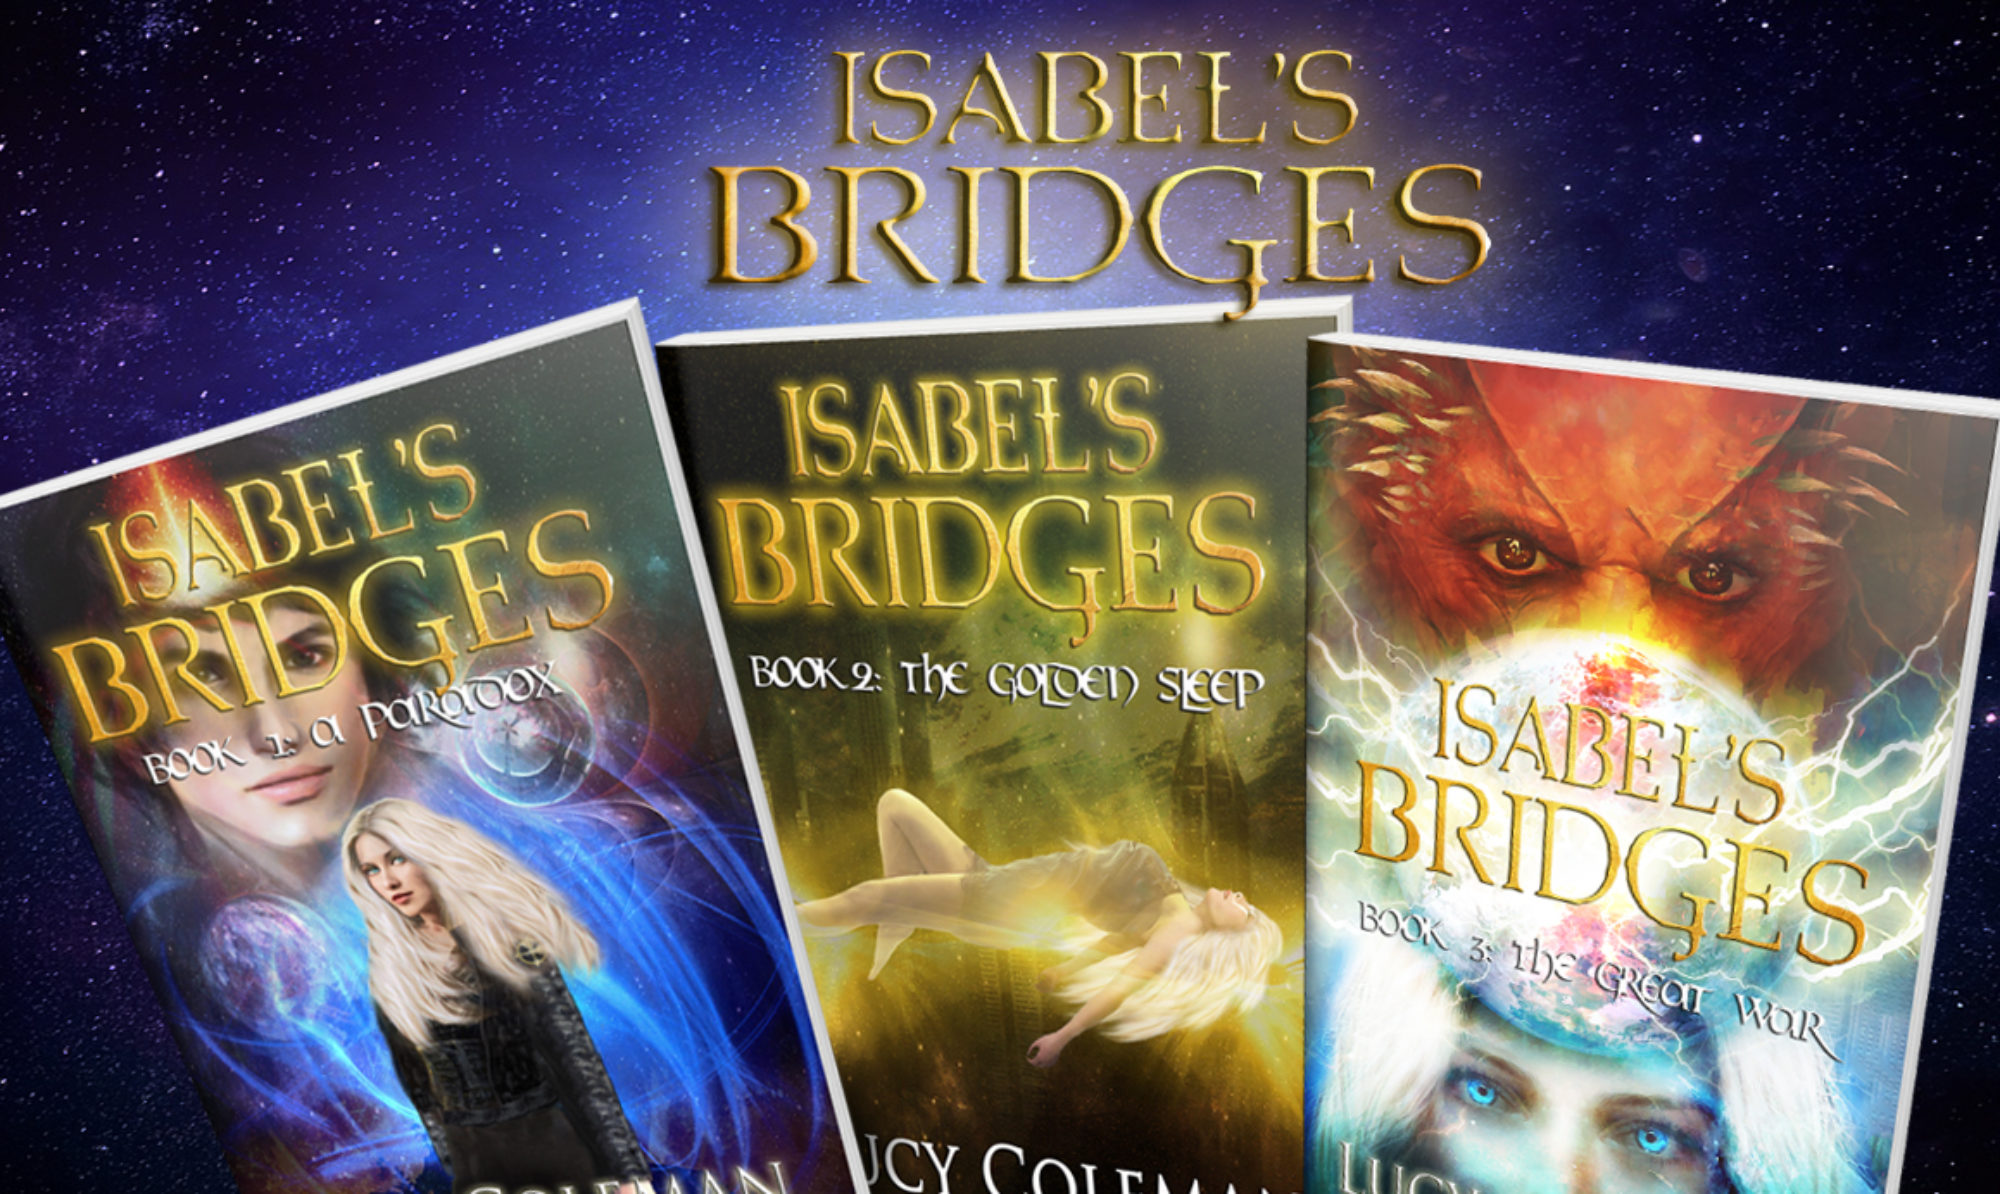 Isabel's bridges